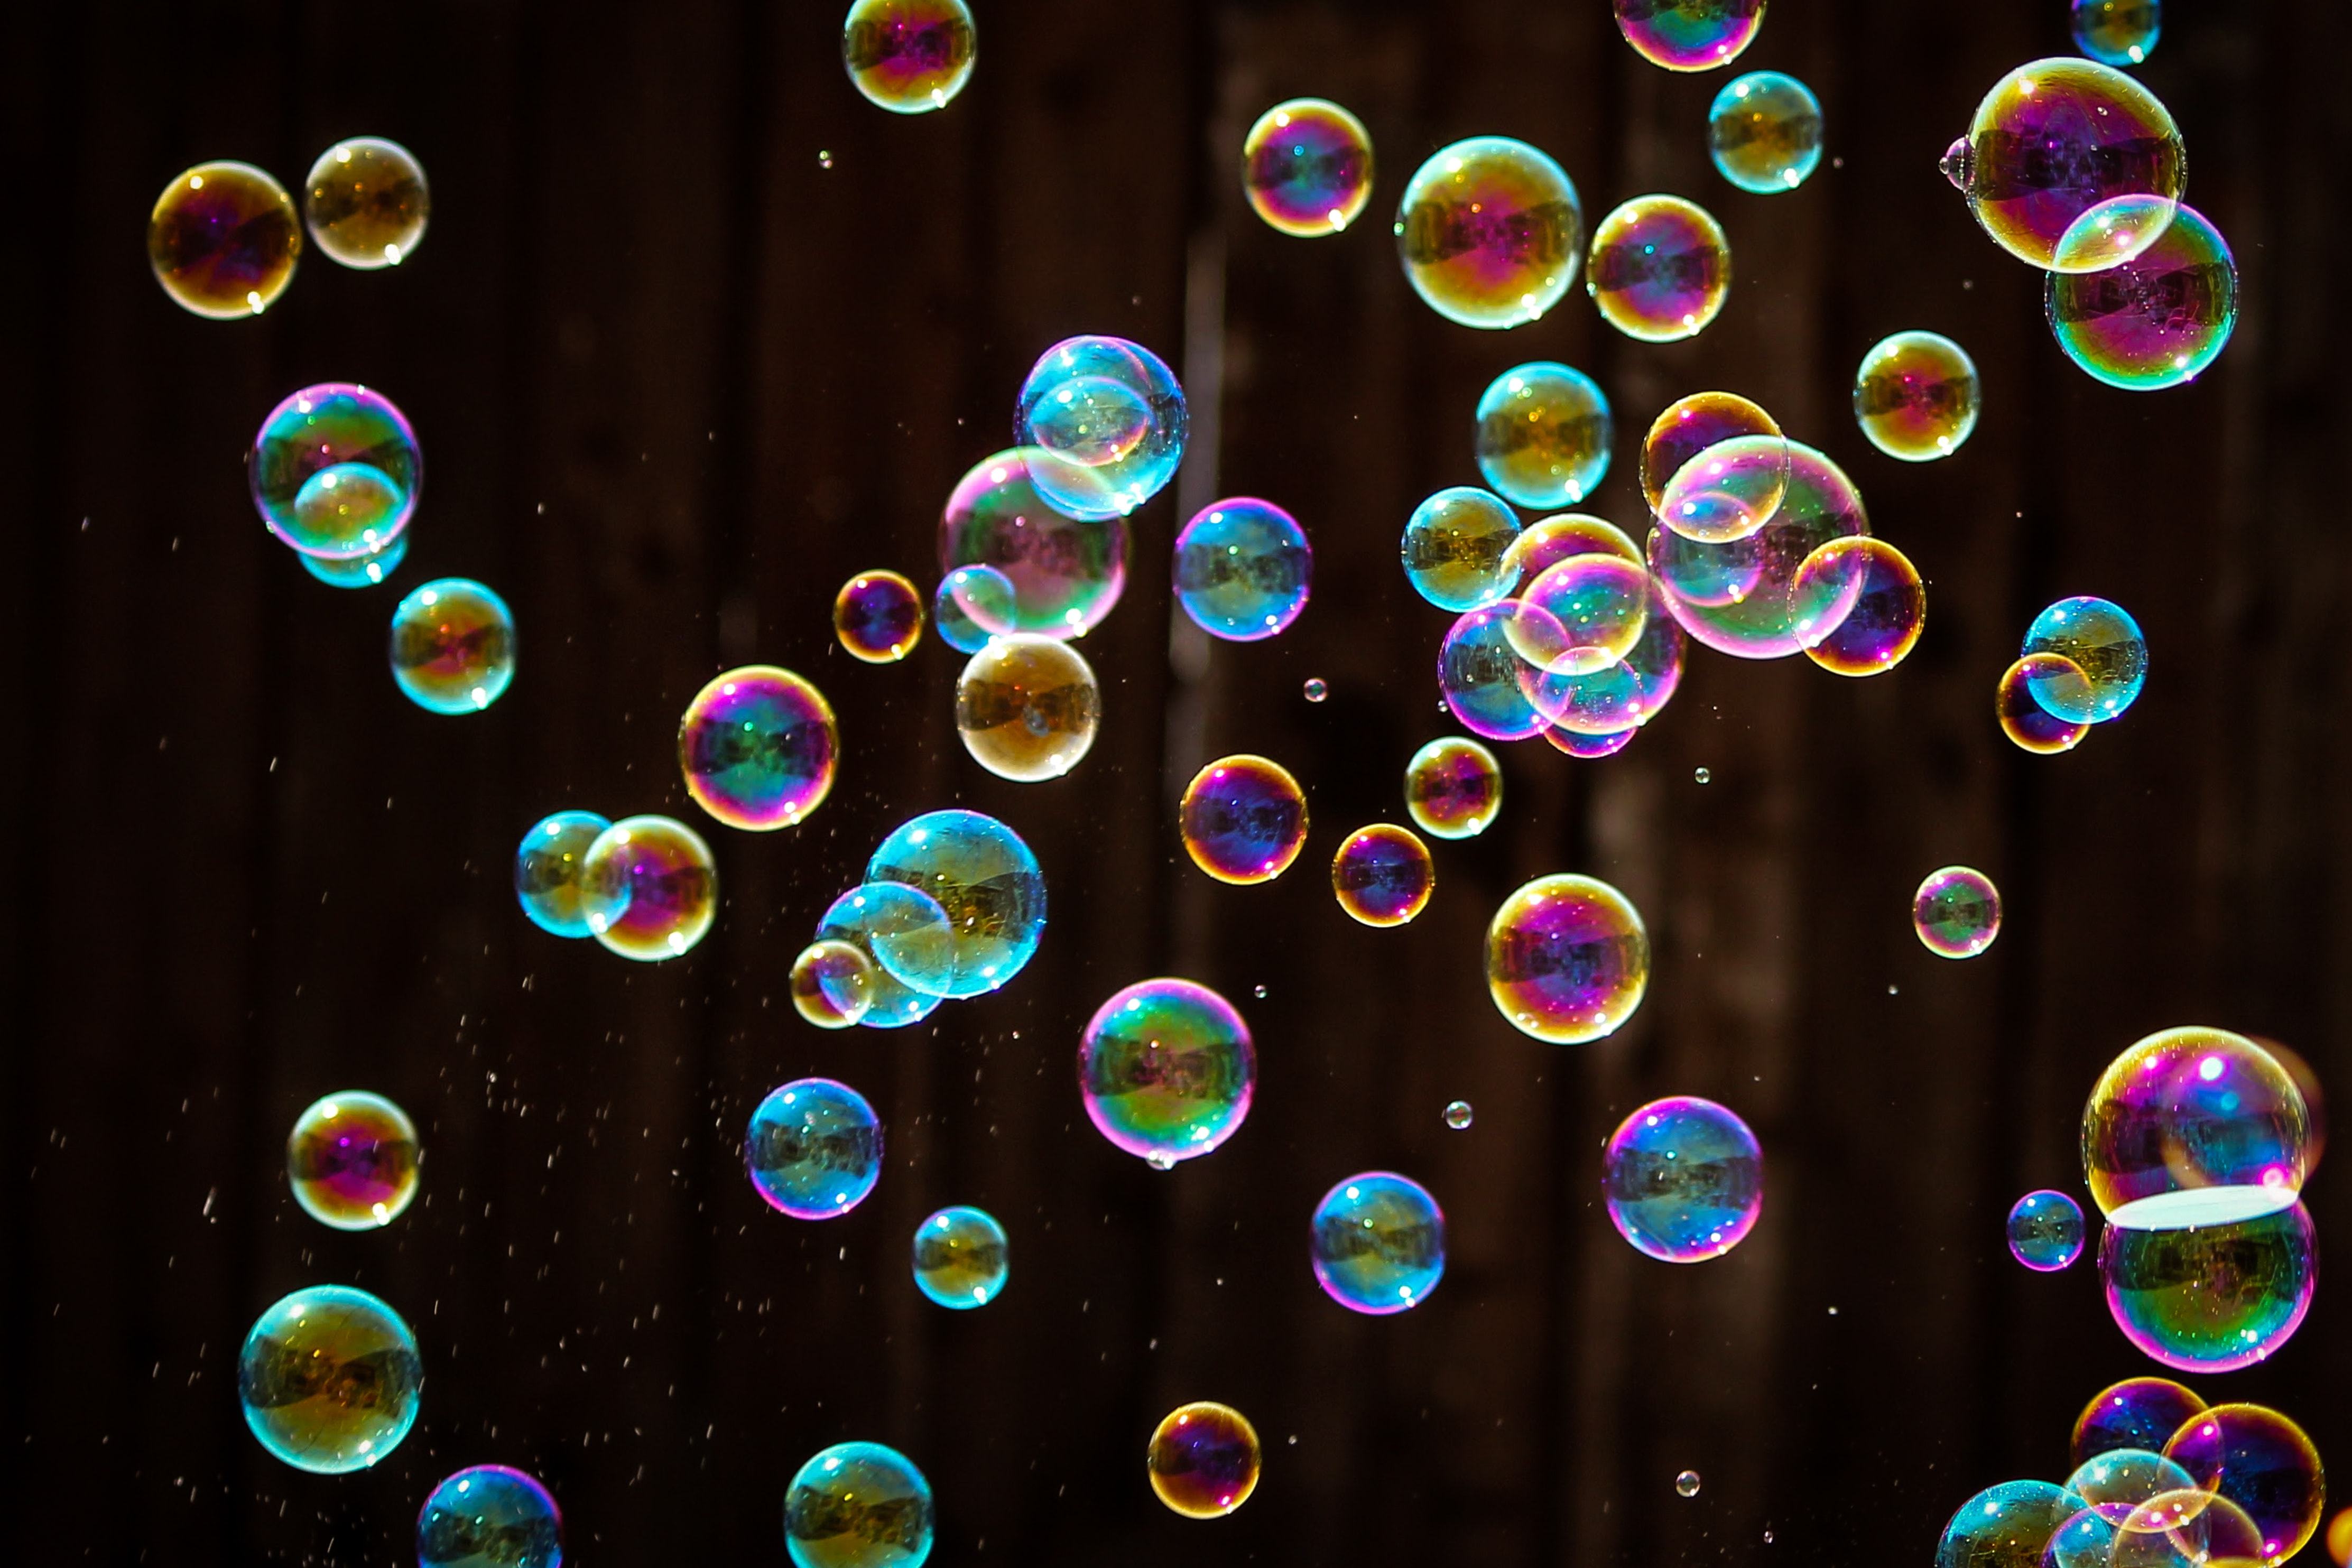 JPMorgan: Crypto Markets, Fueled by Retail Buying Frenzy, are Once Again in a Bubble